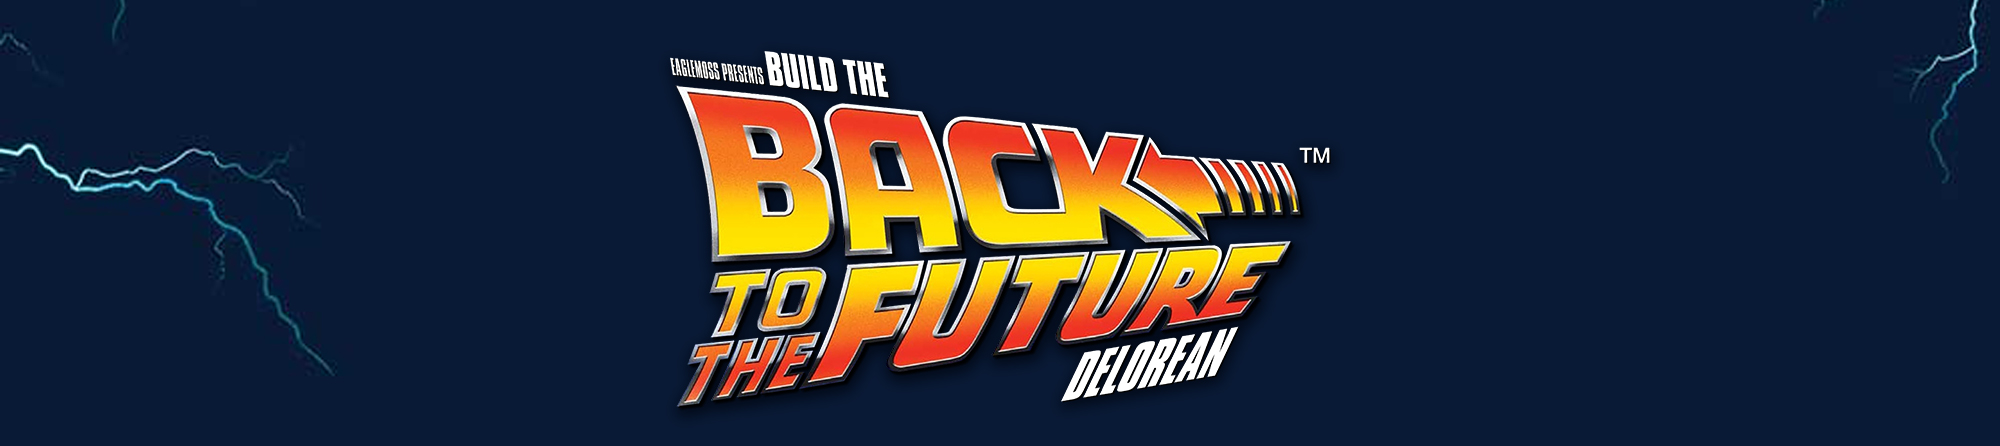 Back to the Future DeLorean banner